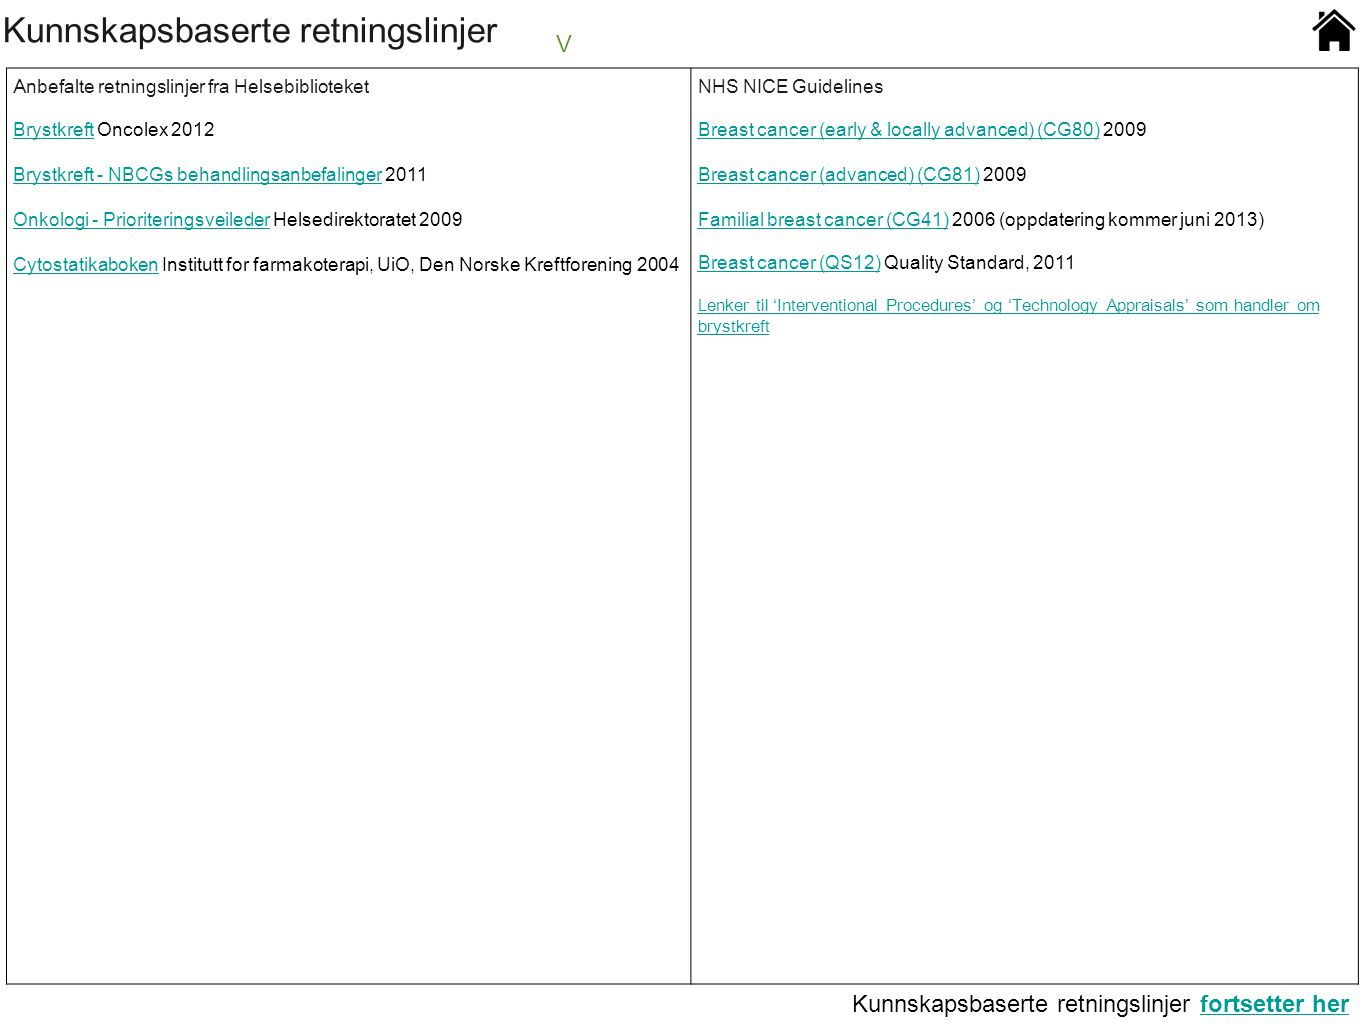 Kunnskapsbaserte retningslinjer V National Guideline Clearinghouse 249 funn: http://guideline.gov/search/search.aspx?term=(breast+or+mamma*)+and+(cance r*+or+neoplasm*+or+tumour*+or+tumor*+or+carcinom*+or+adenocarcinom*+or+ oncol*+or+metasta*) GIN 128 funn Kliniske retningslinjer, Danmark Ingen funn Kunnskapsbaserte retningslinjer fortsetter herfortsetter her